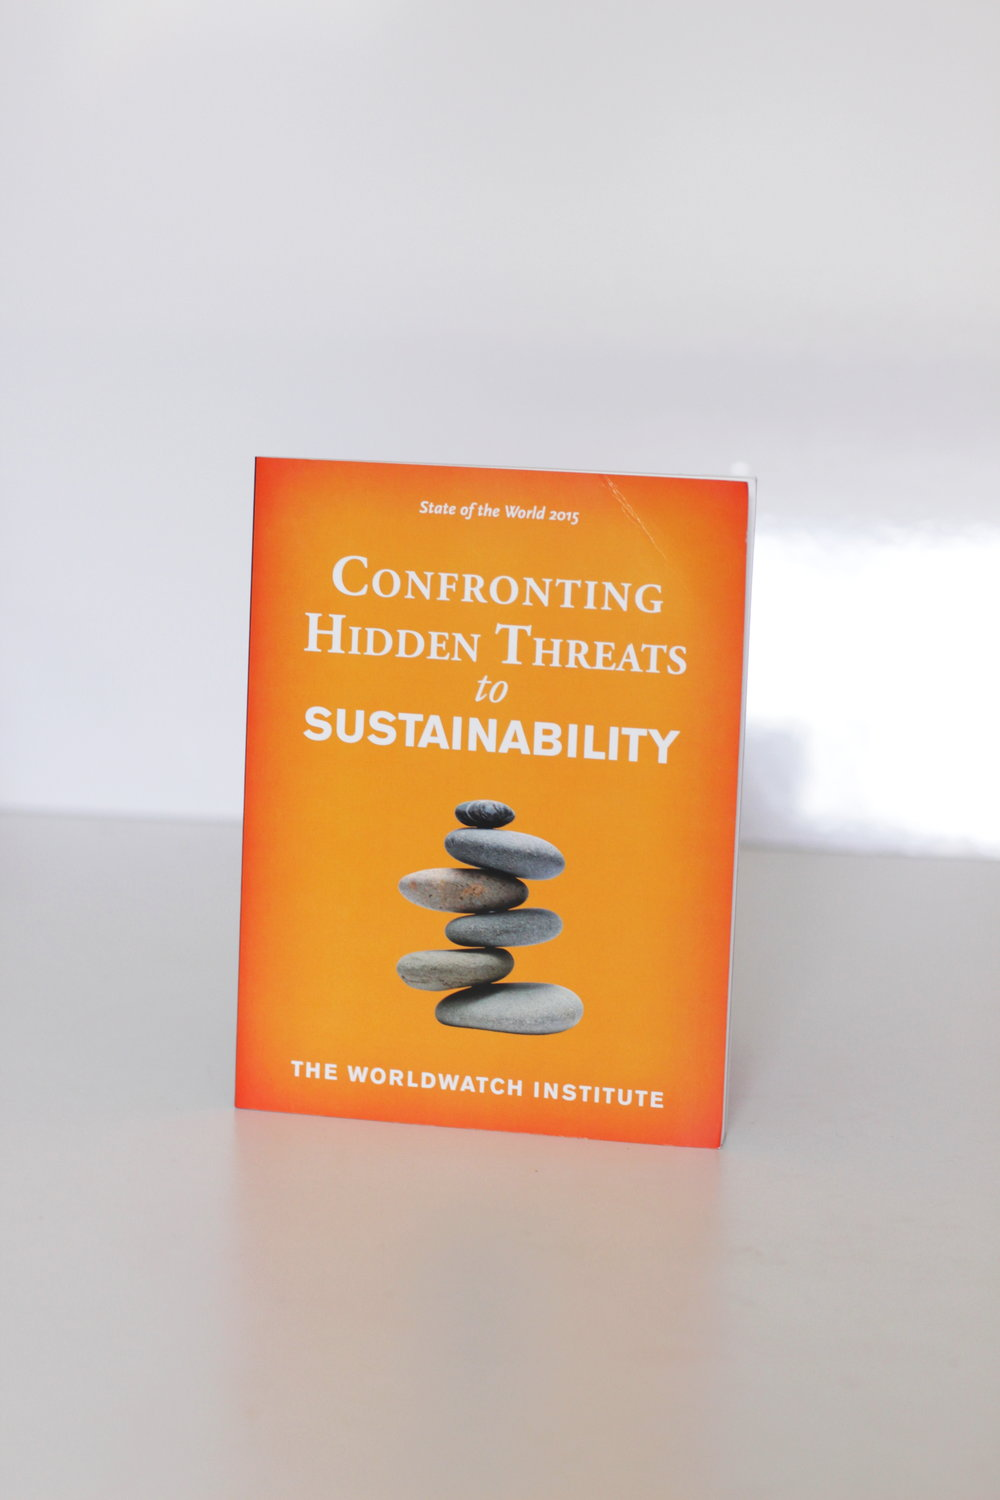 Confronting Hidden Threats to Sustainability